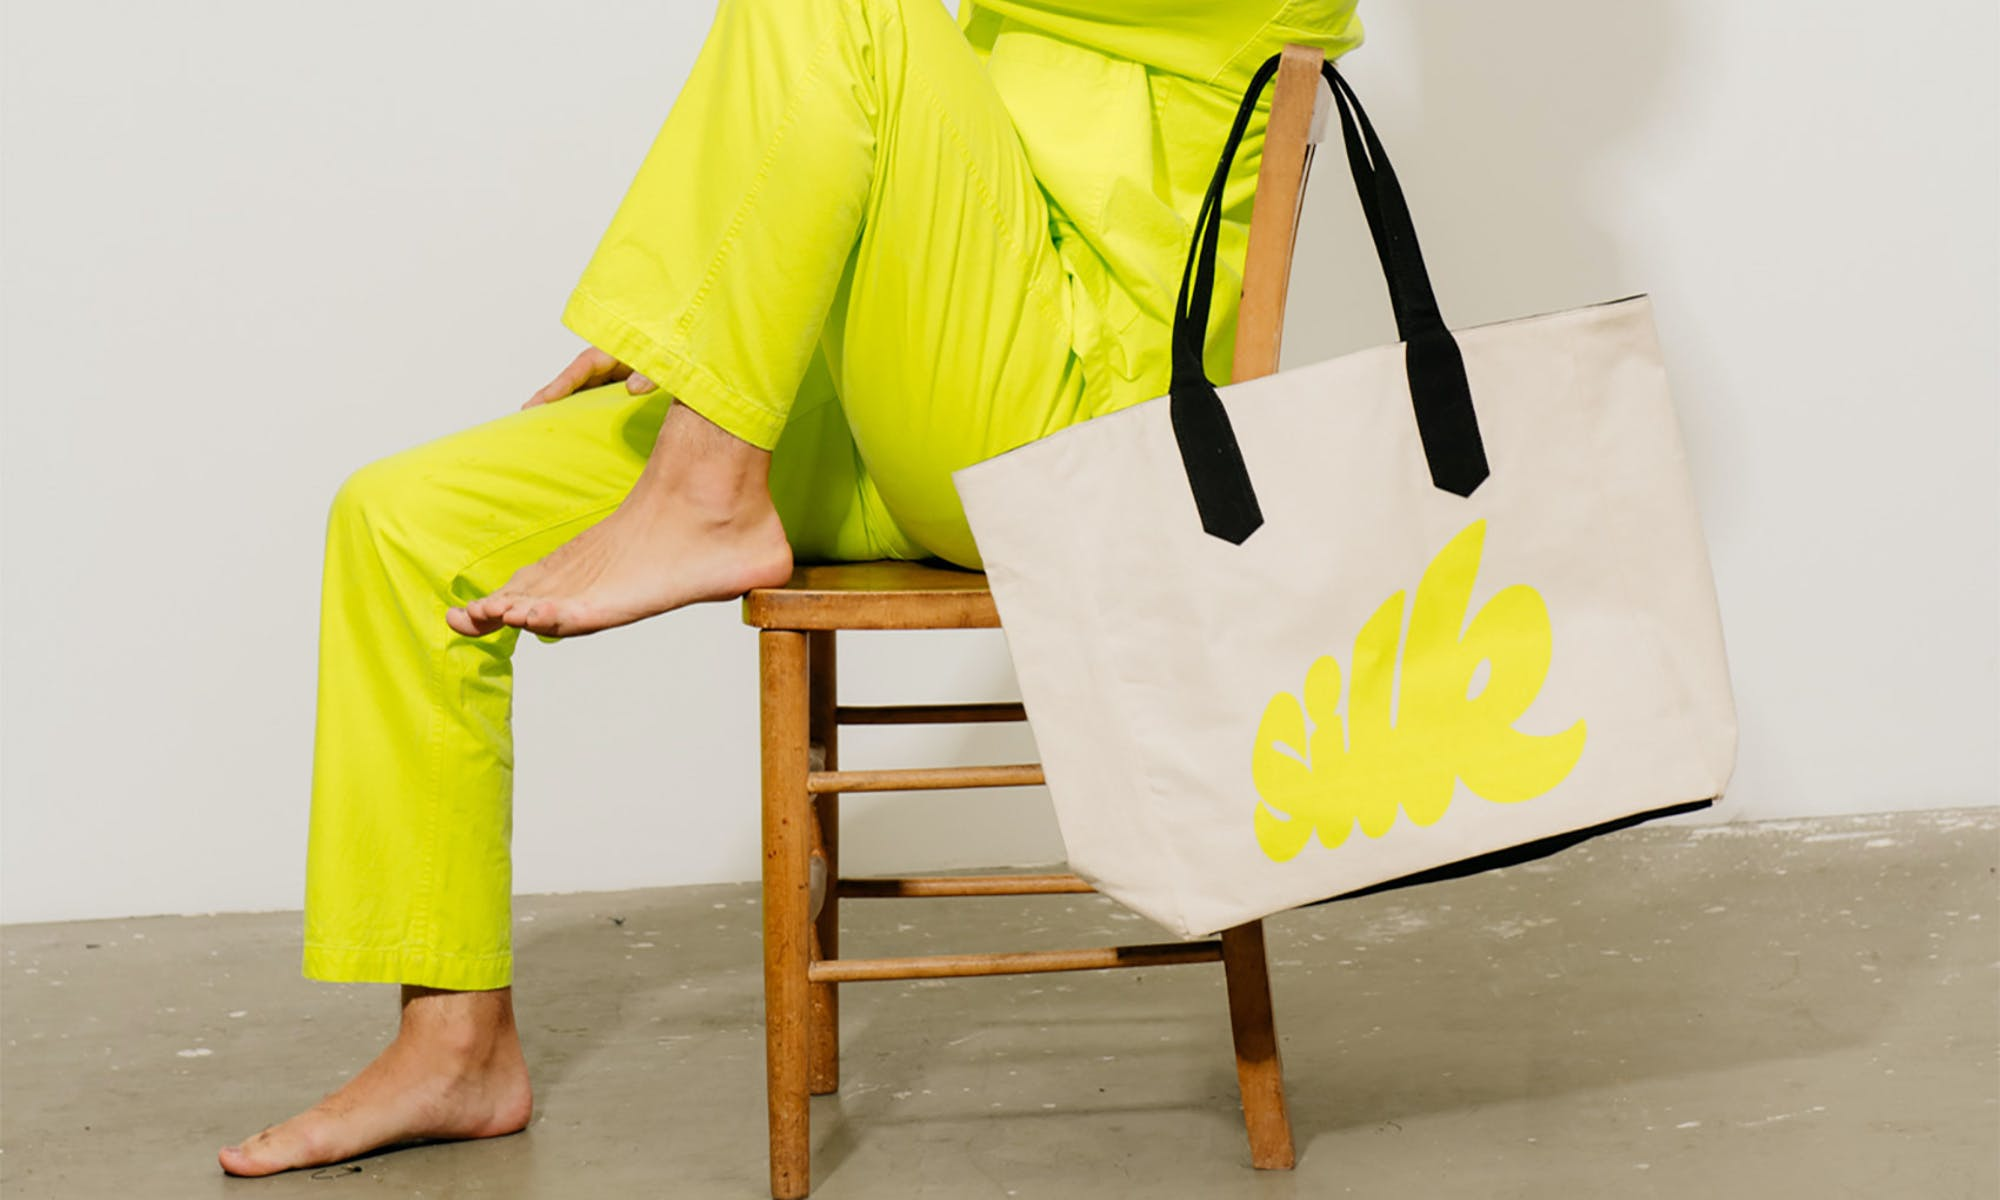 Model in yellow outfit, holding a bag that says silk